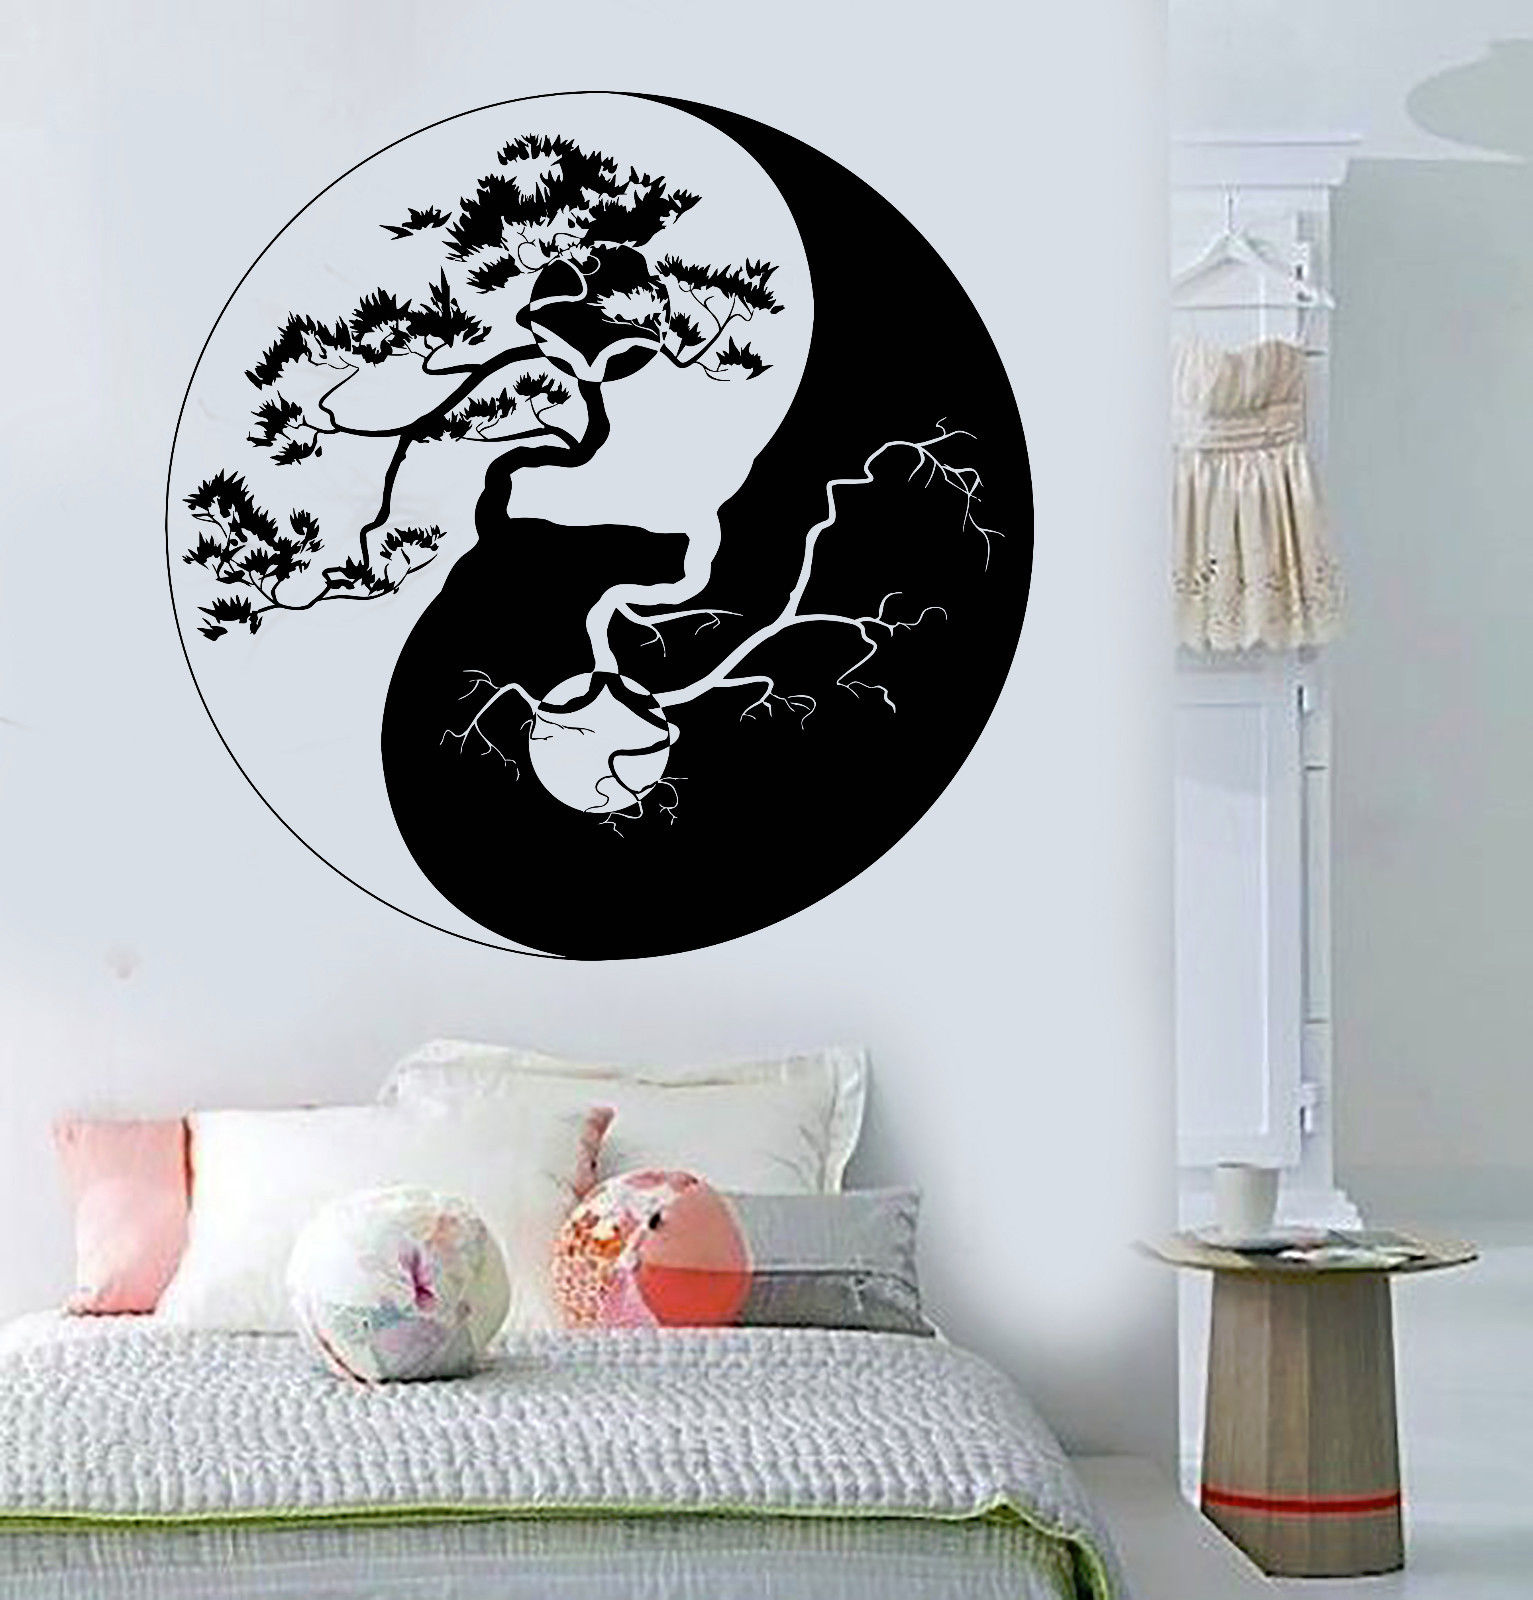 hwhd vinyl wall decal yin yang tree zen asian style